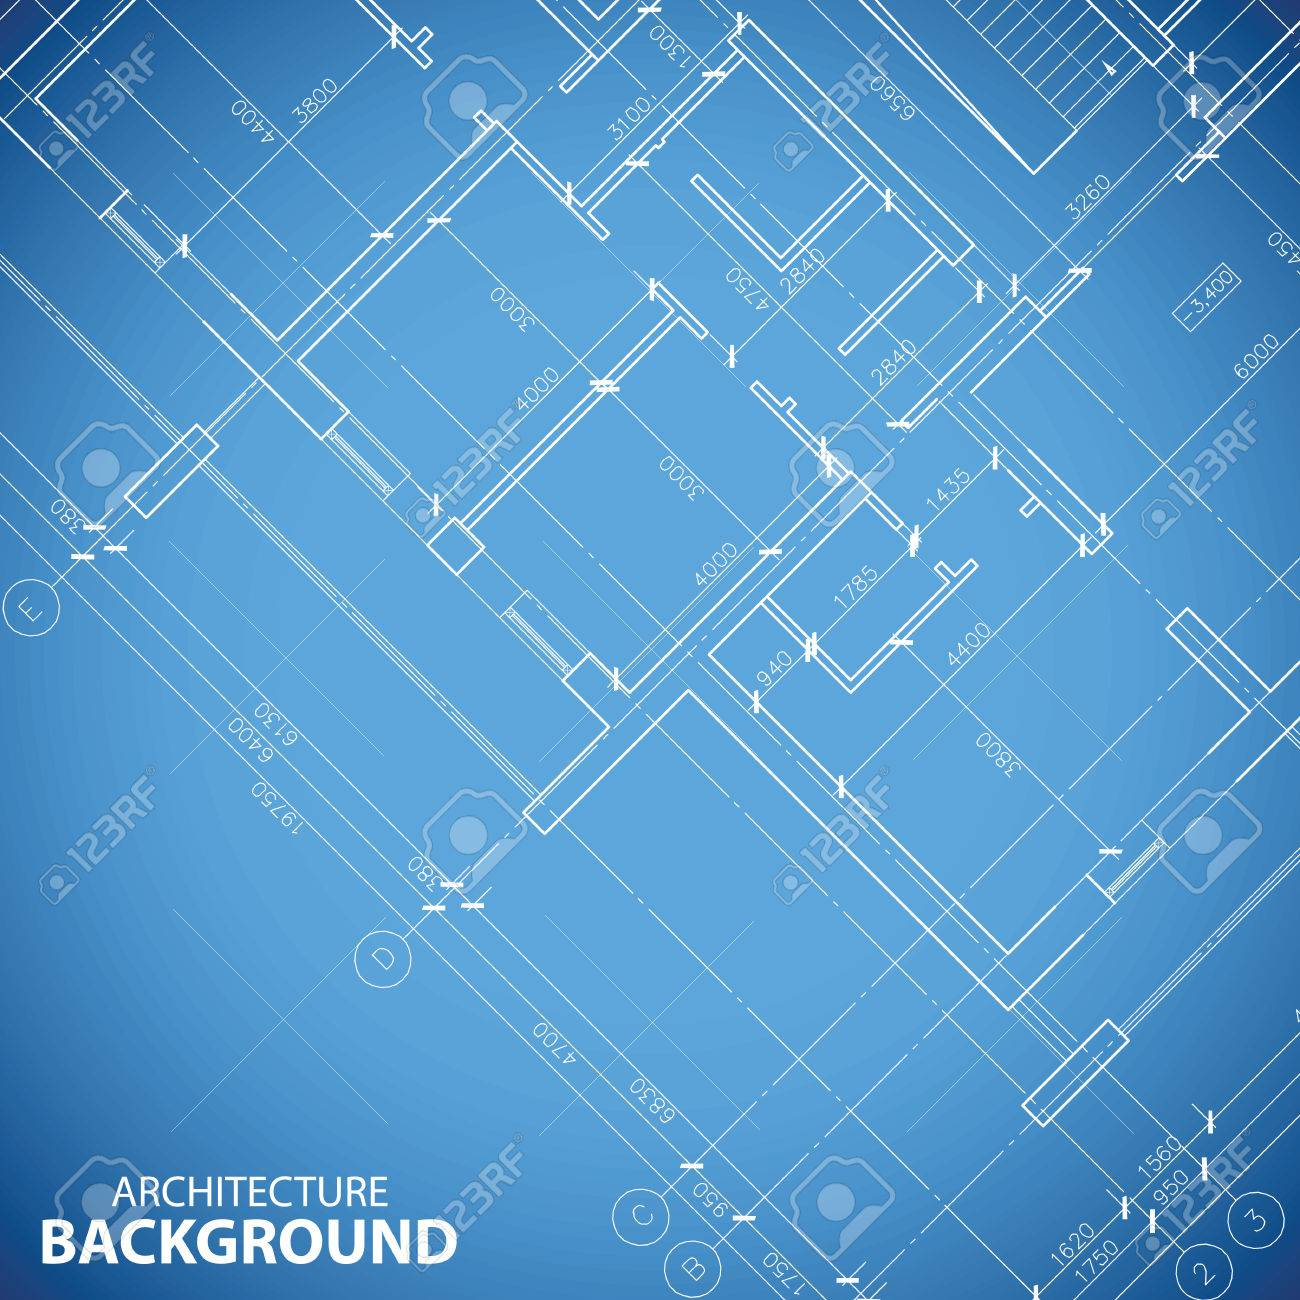 Blueprint building plan background royalty free cliparts vectors blueprint building plan background stock vector 38323835 malvernweather